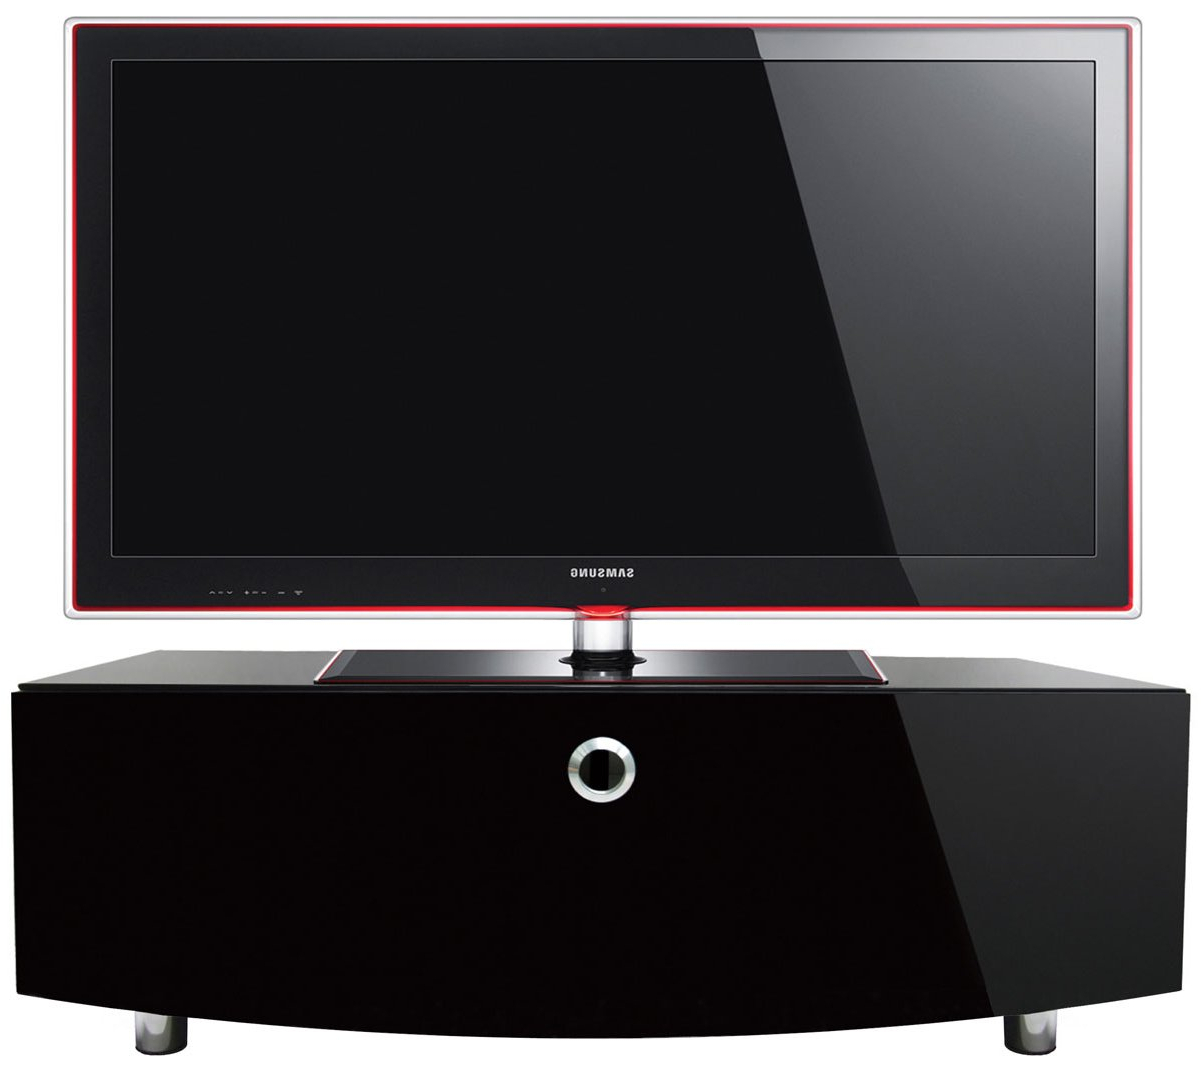 Mda Designs Curve 1000 Tv Stand – Black For Well Liked Black Gloss Corner Tv Stand (View 15 of 20)